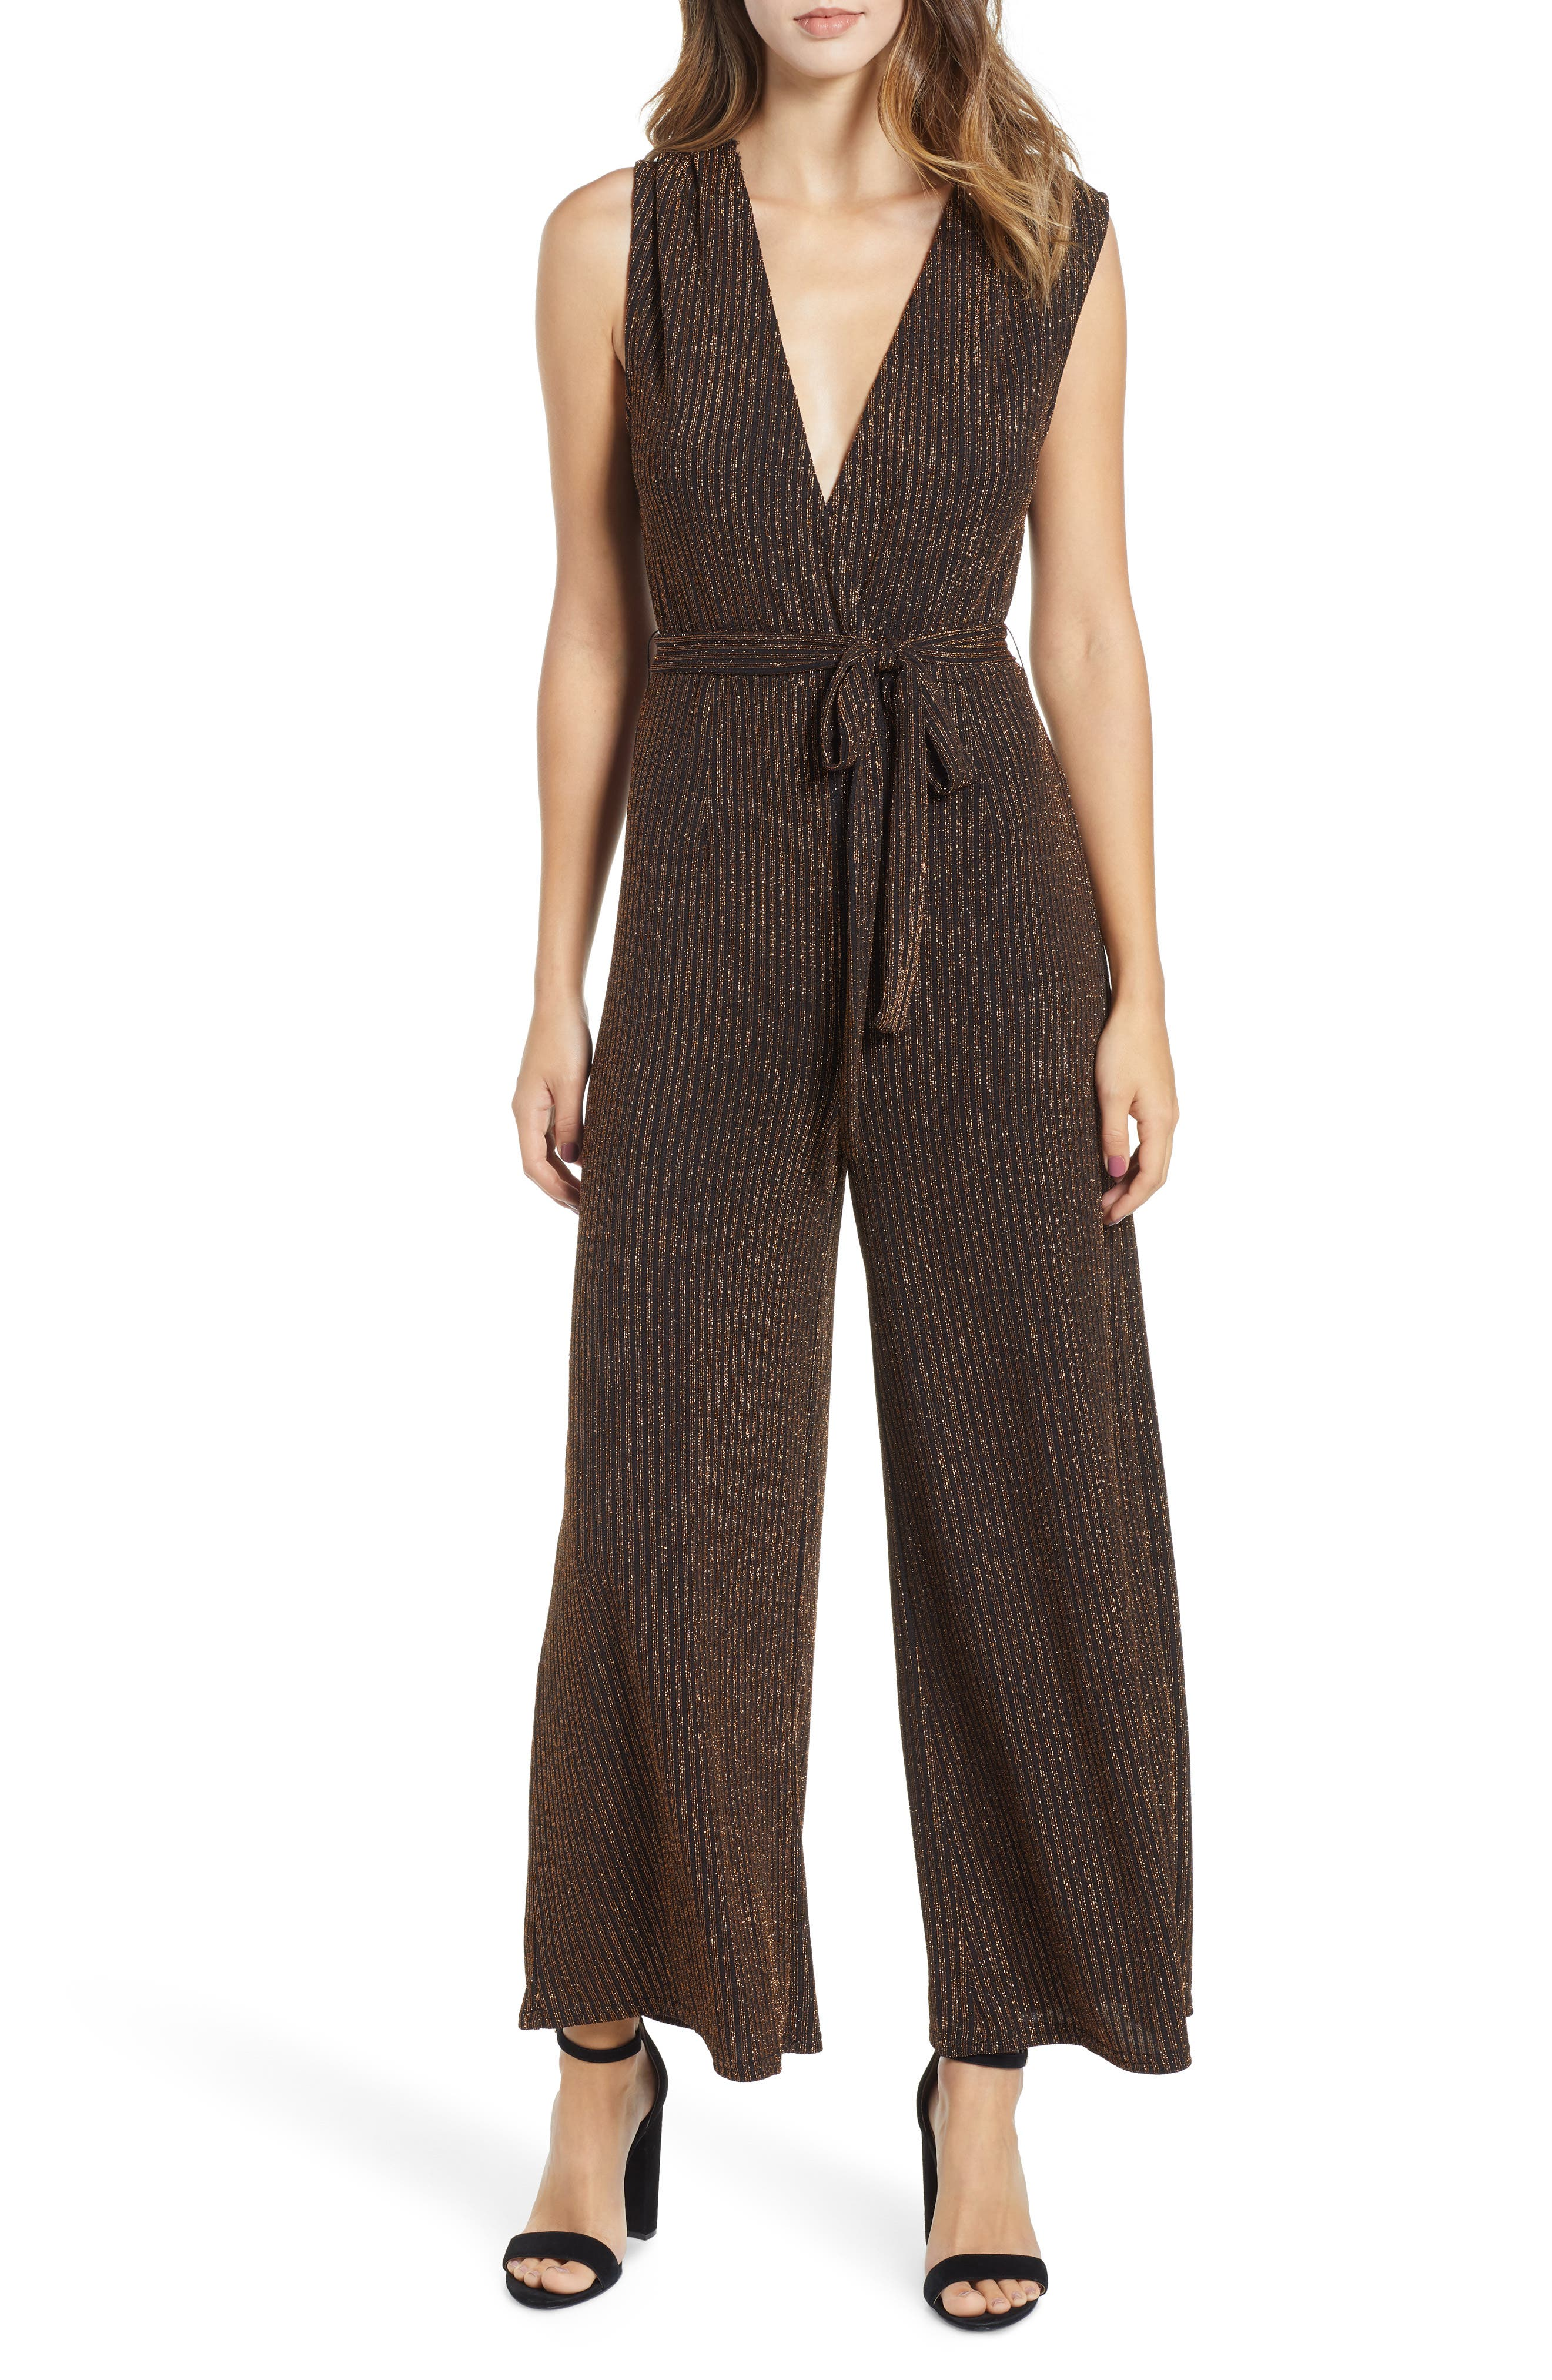 Lover Lover Metallic Jumpsuit,                             Main thumbnail 1, color,                             BLACK/ ROSE GOLD